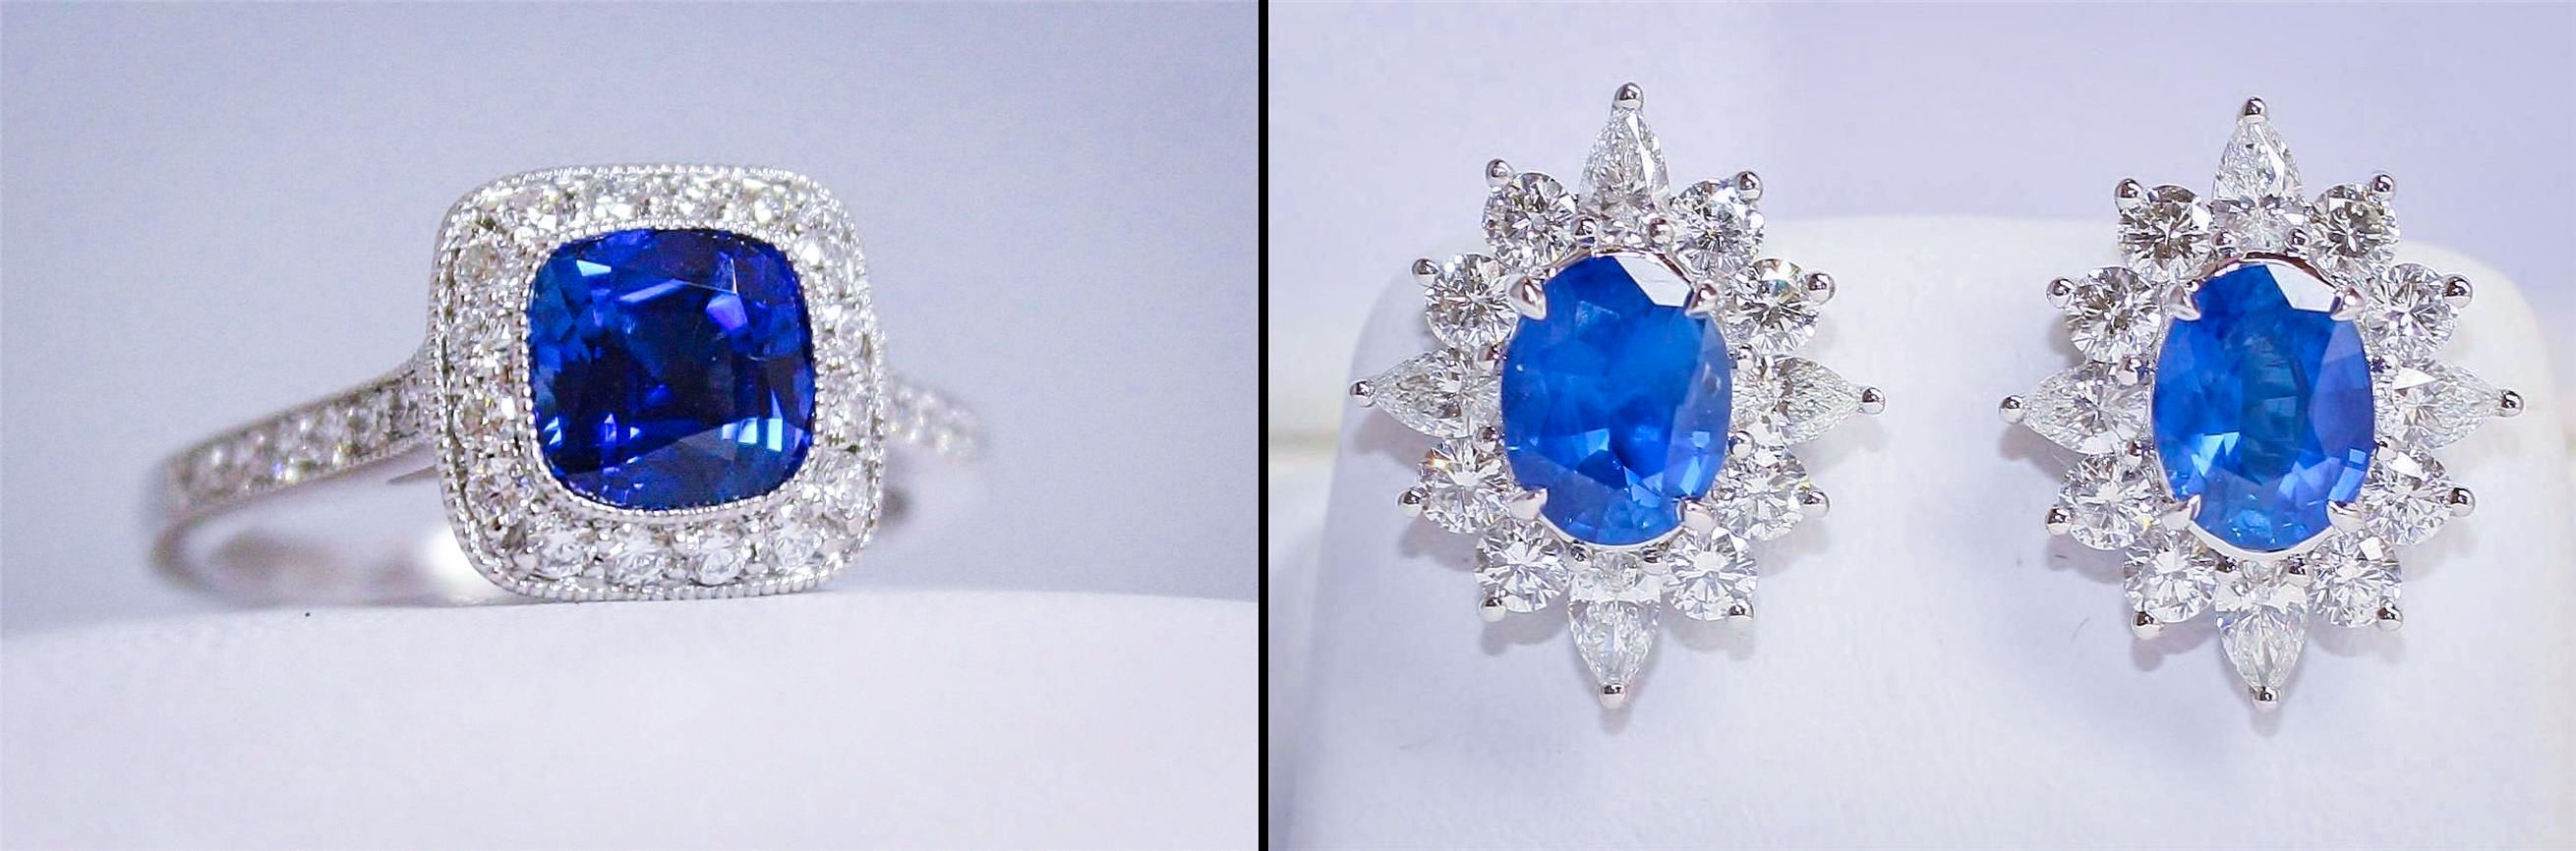 Where To Sell Expensive Gemstones Amp Jewelry